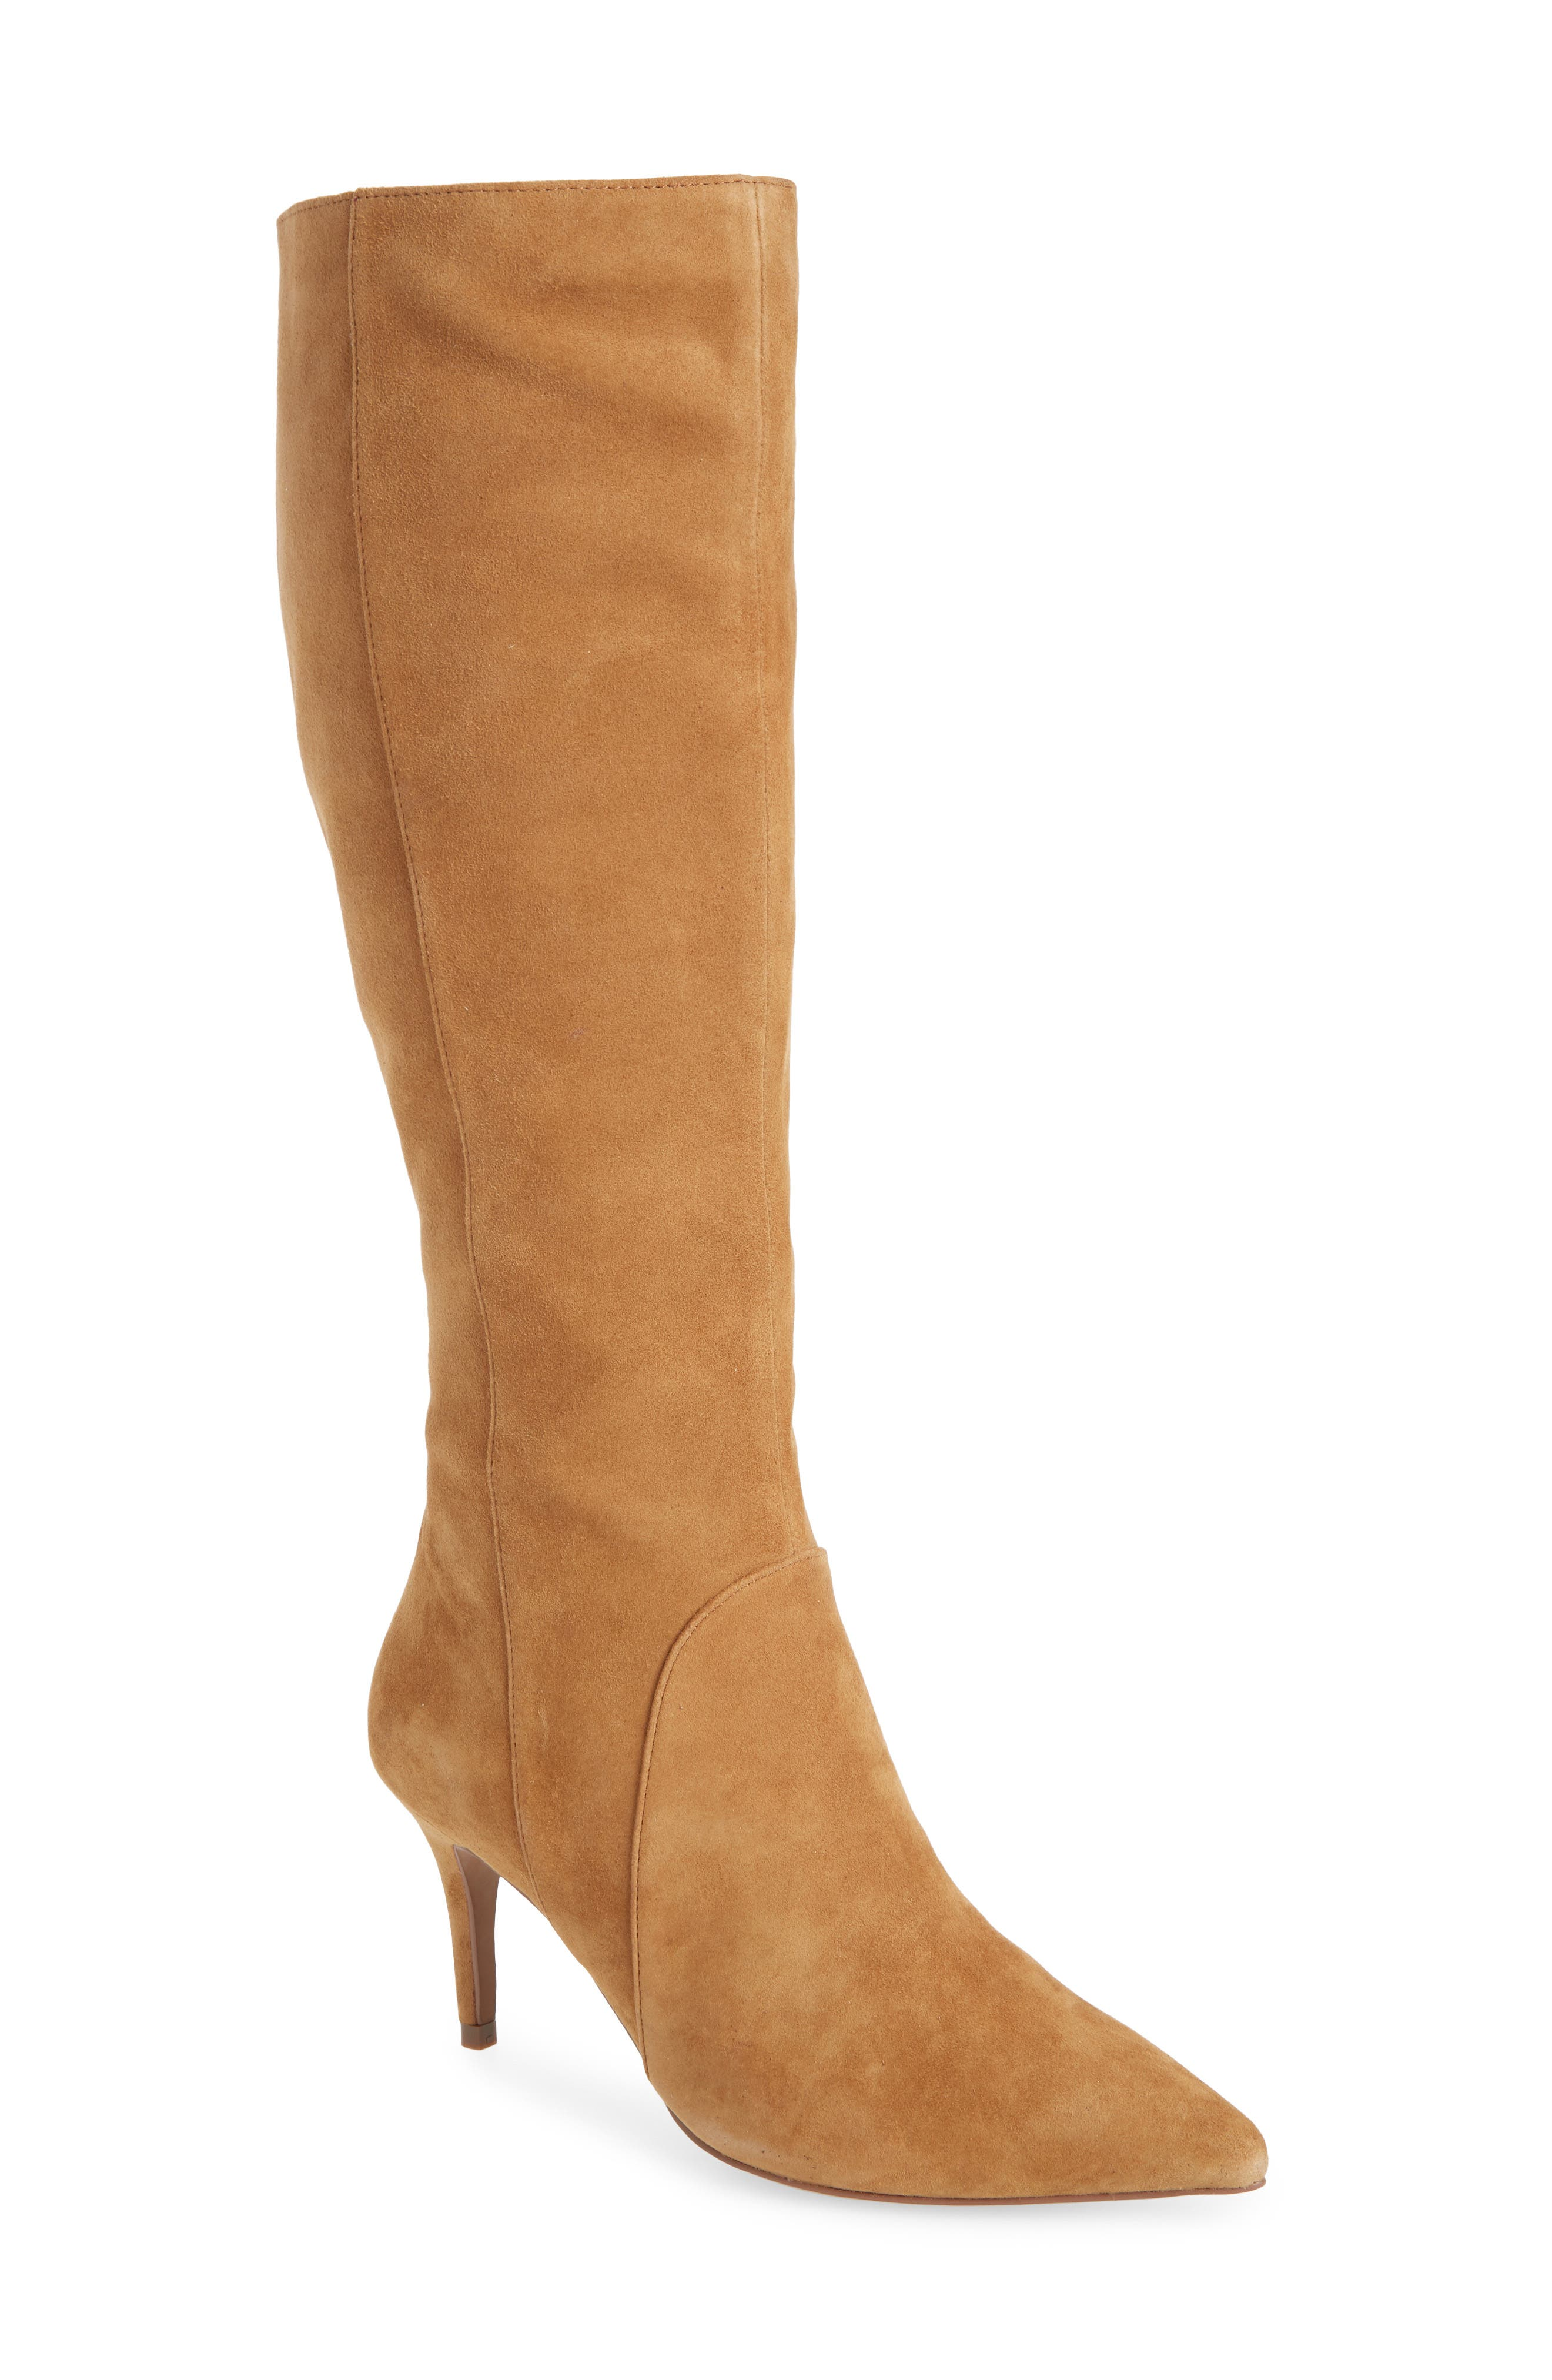 Linea Paolo Perfect Boot- Beige